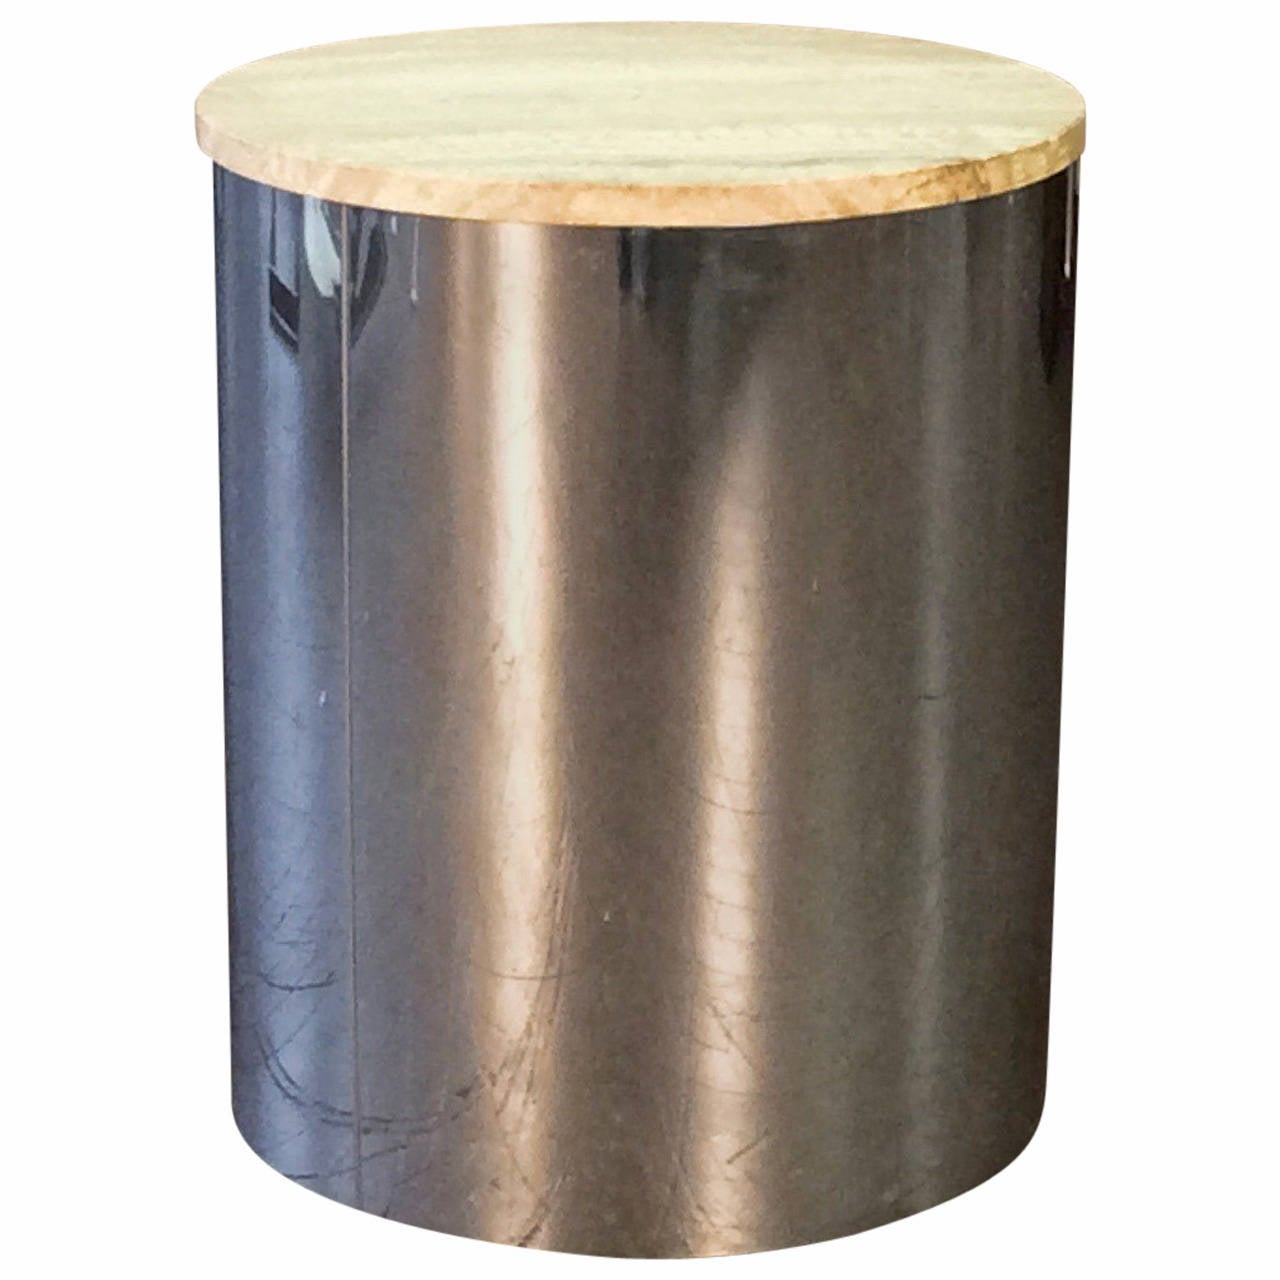 Chrome Drum Coffee Table: Sleek Chrome Drum Table With Travertine Top By C. Jere